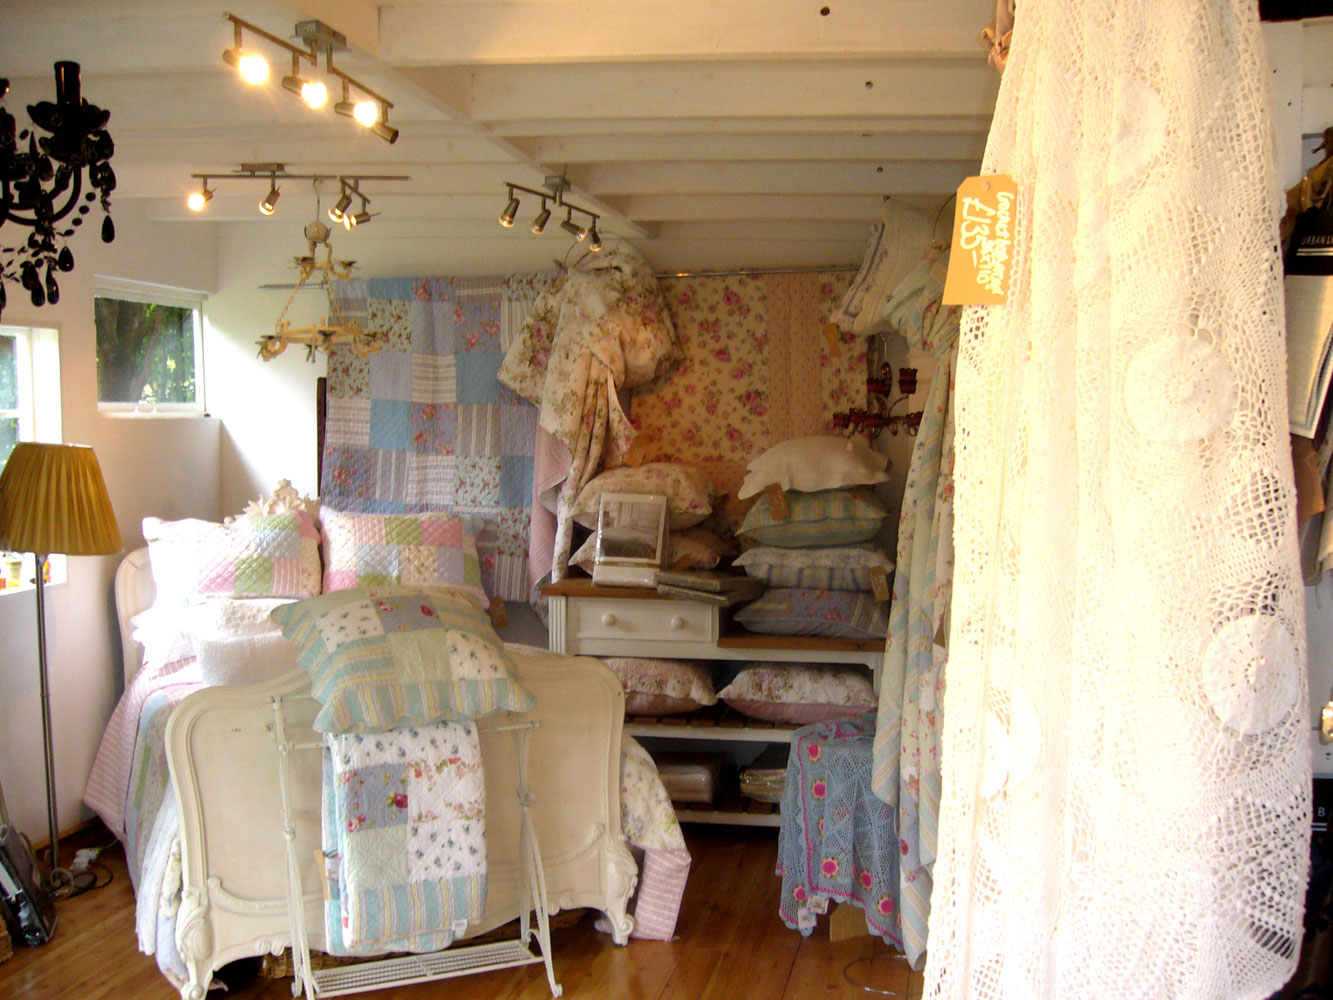 Patchwork Quilts From Linen Lace And Patchwork, Essex. Uk